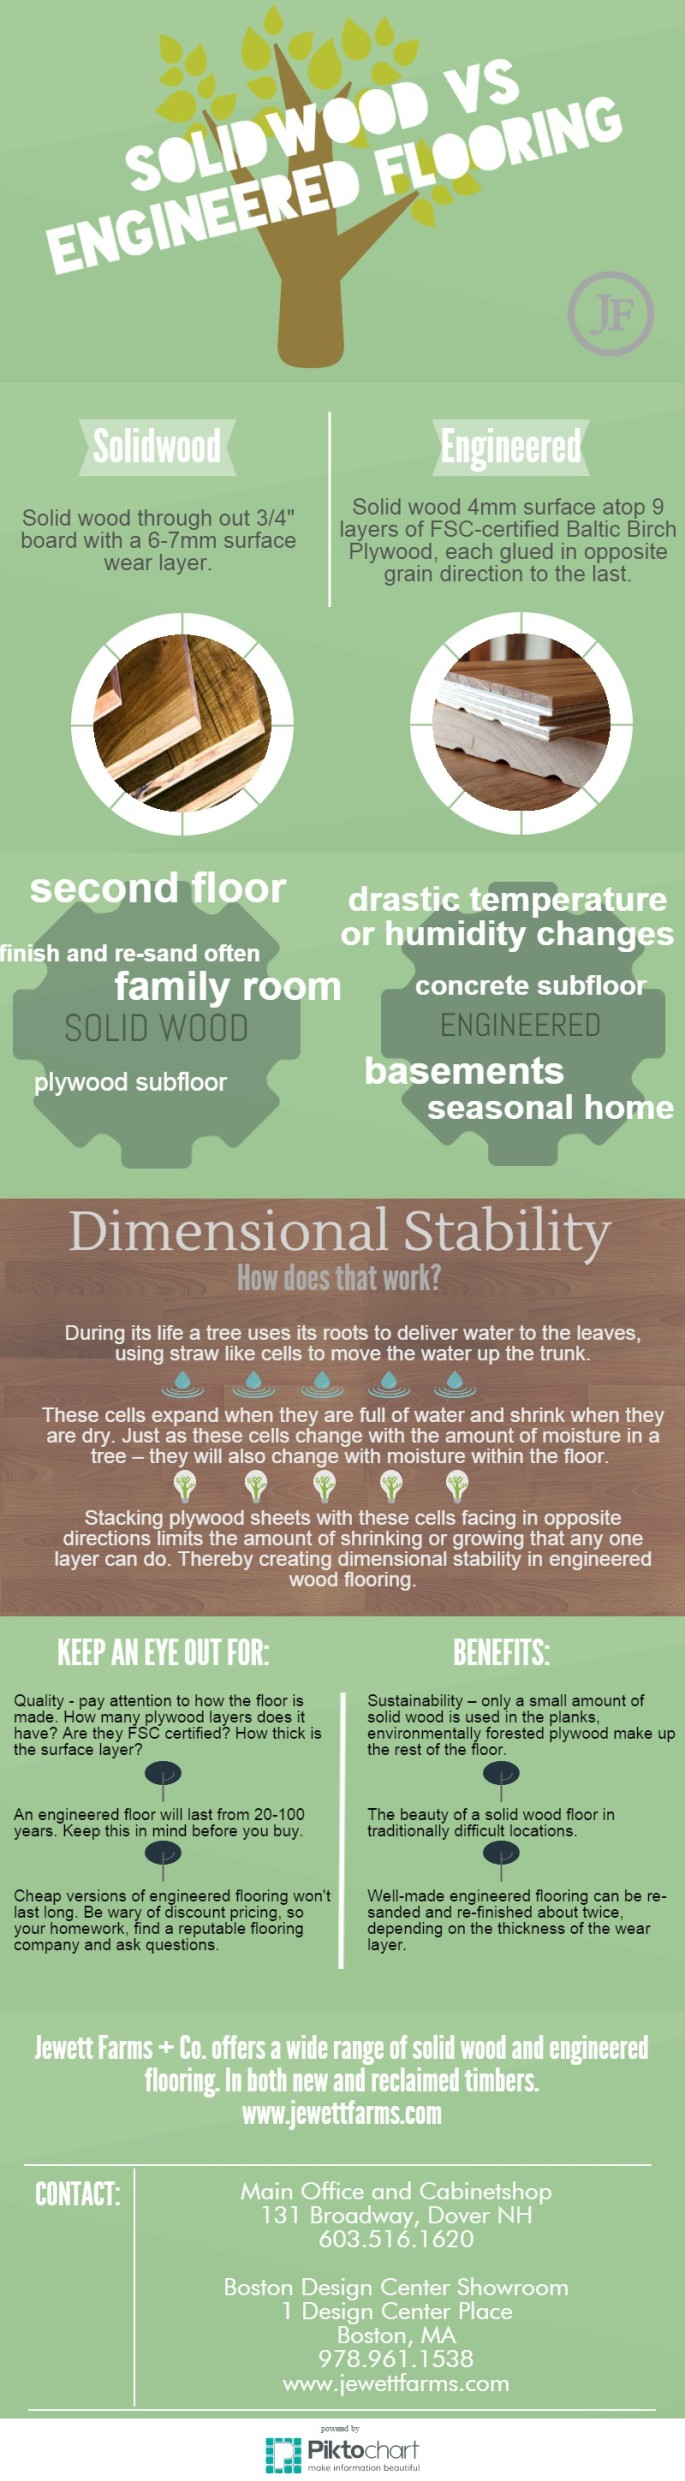 Solid Wood Vs. Engineered Flooring Infographic